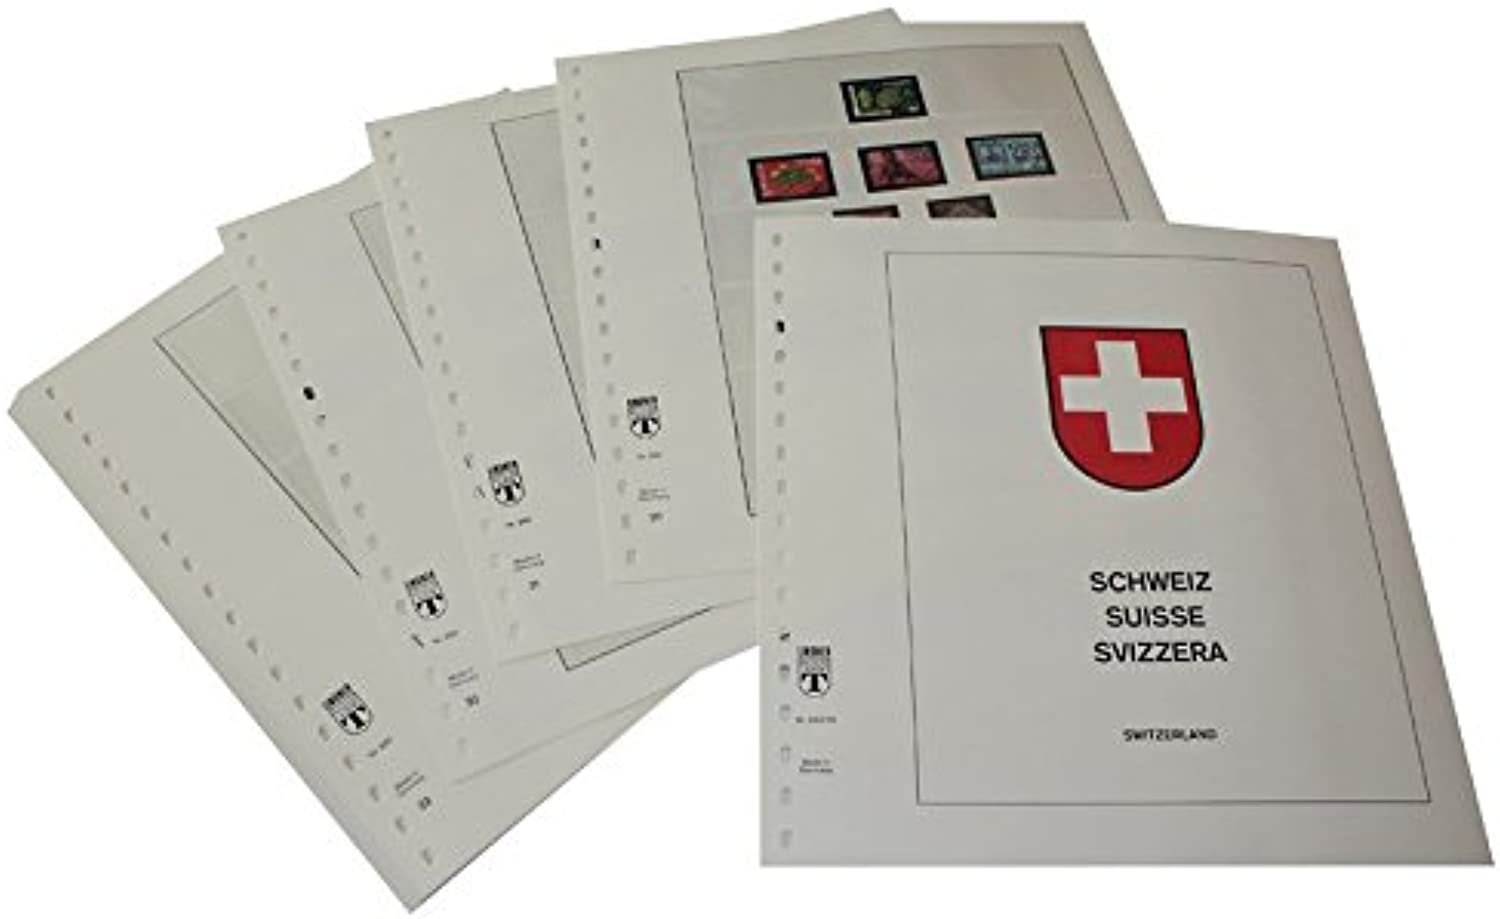 Lindner T260 76 Switzerland w o int. Organisations Year 1976 to 1984